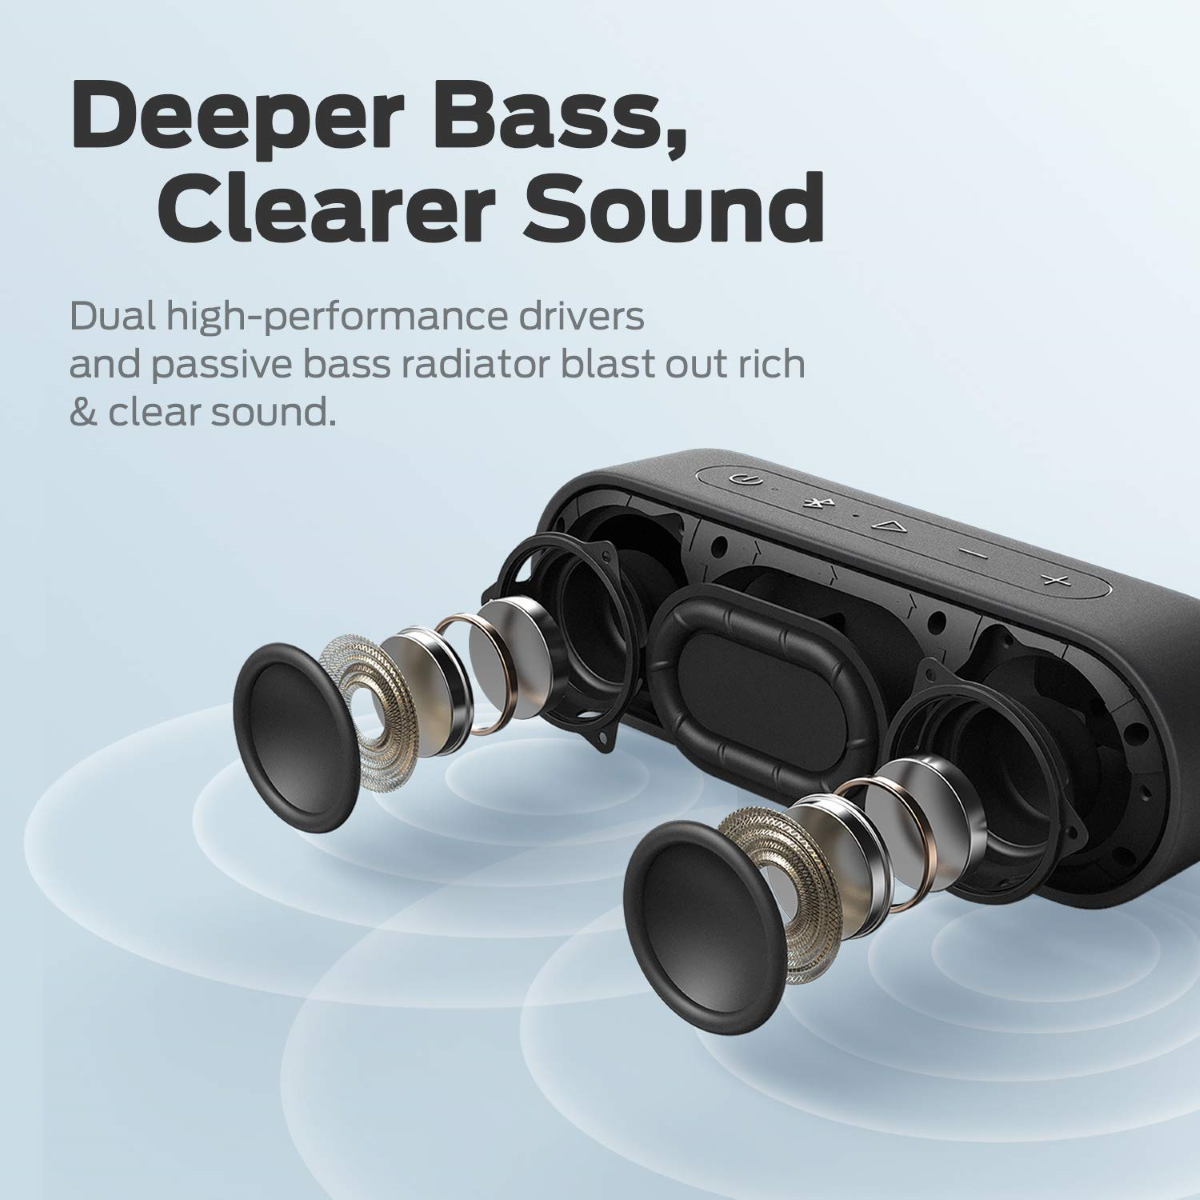 XSound Go - Dual High-Performance 6W 40mm Drivers and State-of-The-Art Passive Bass Radiator